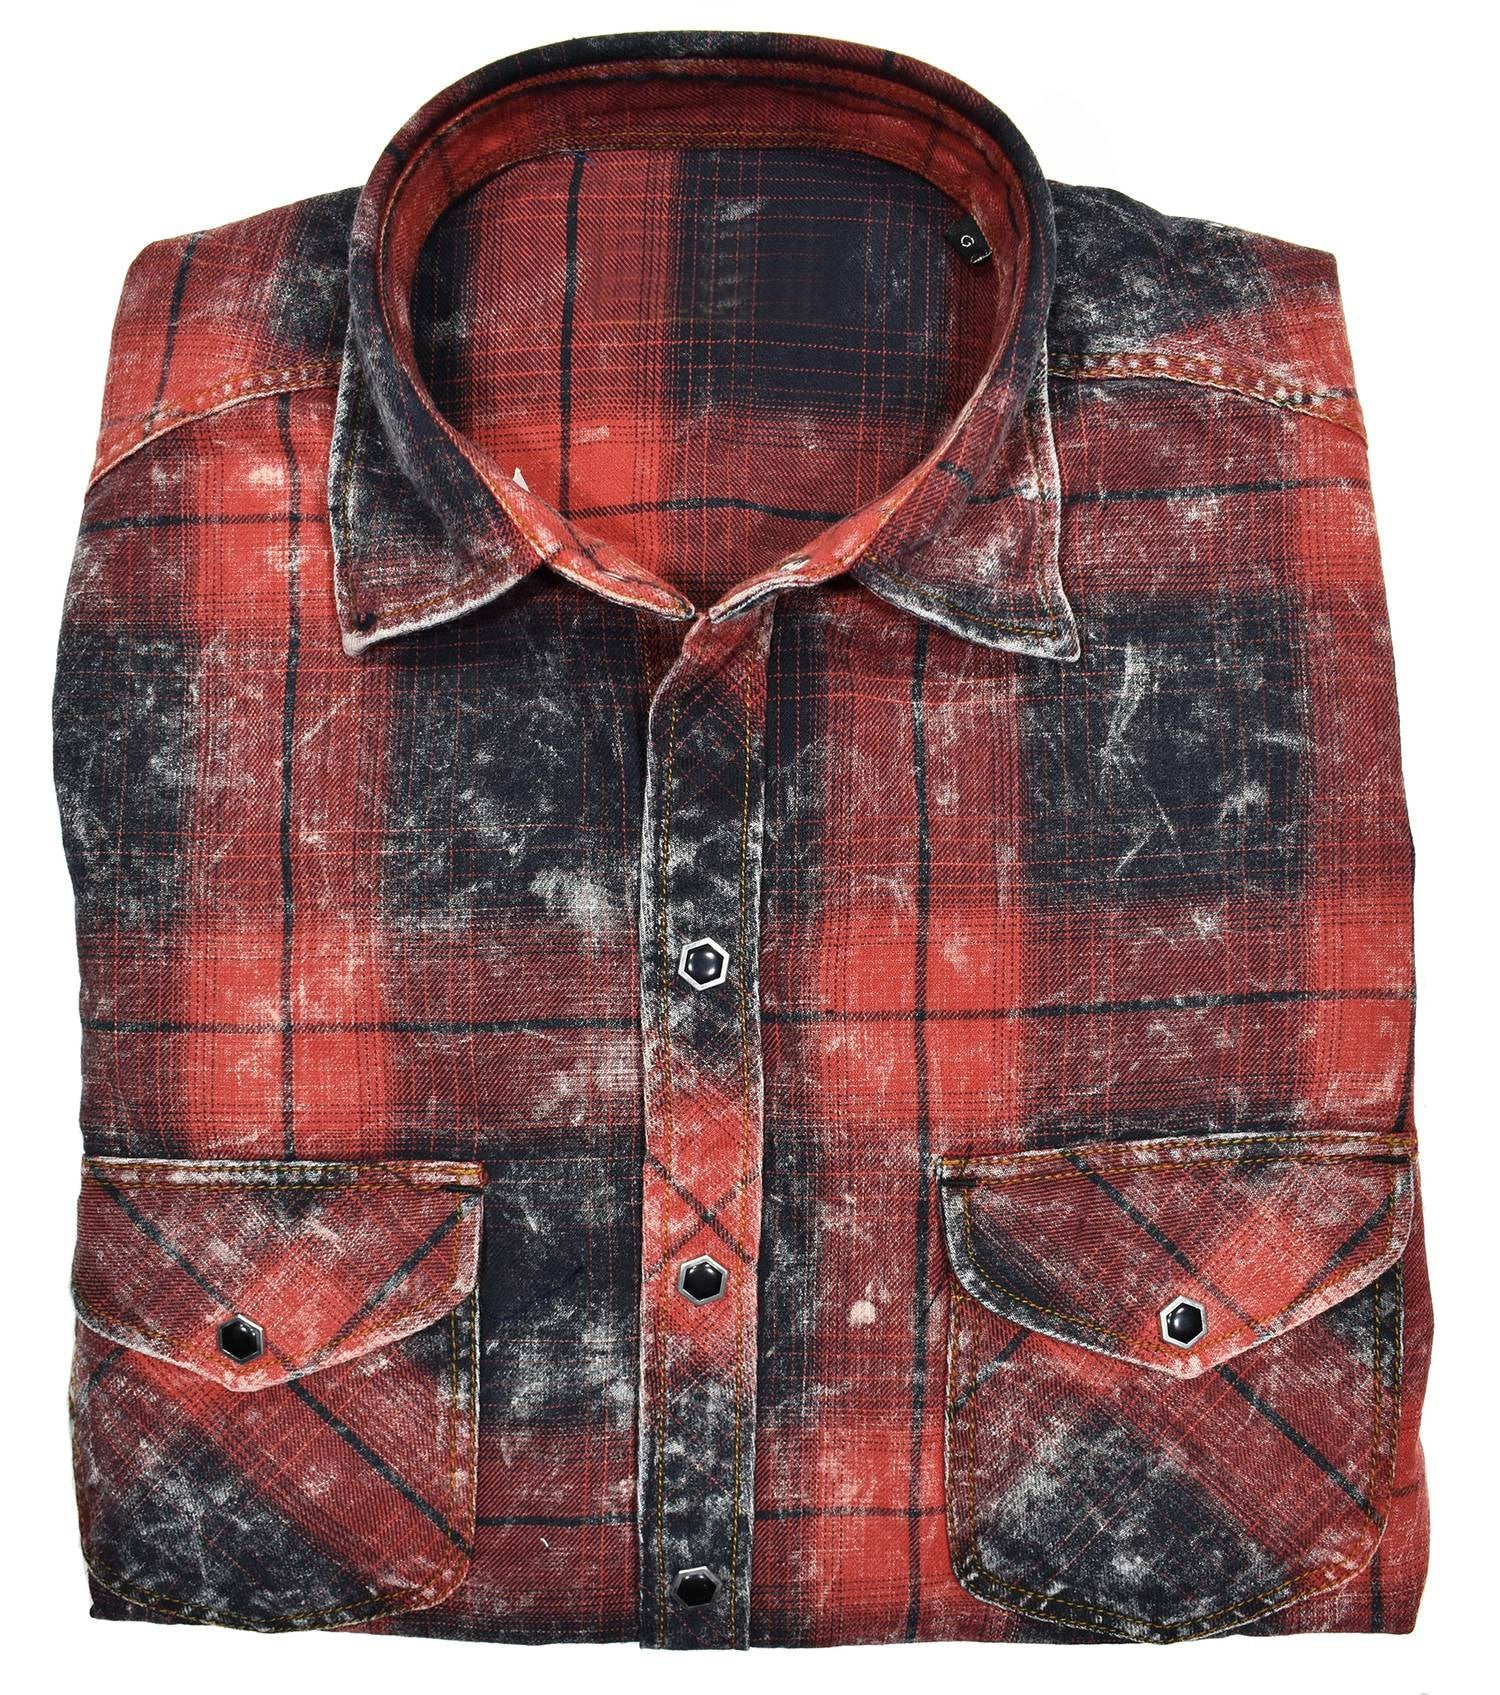 RJ022W Georgia Distressed Plaid - Marcello Sport